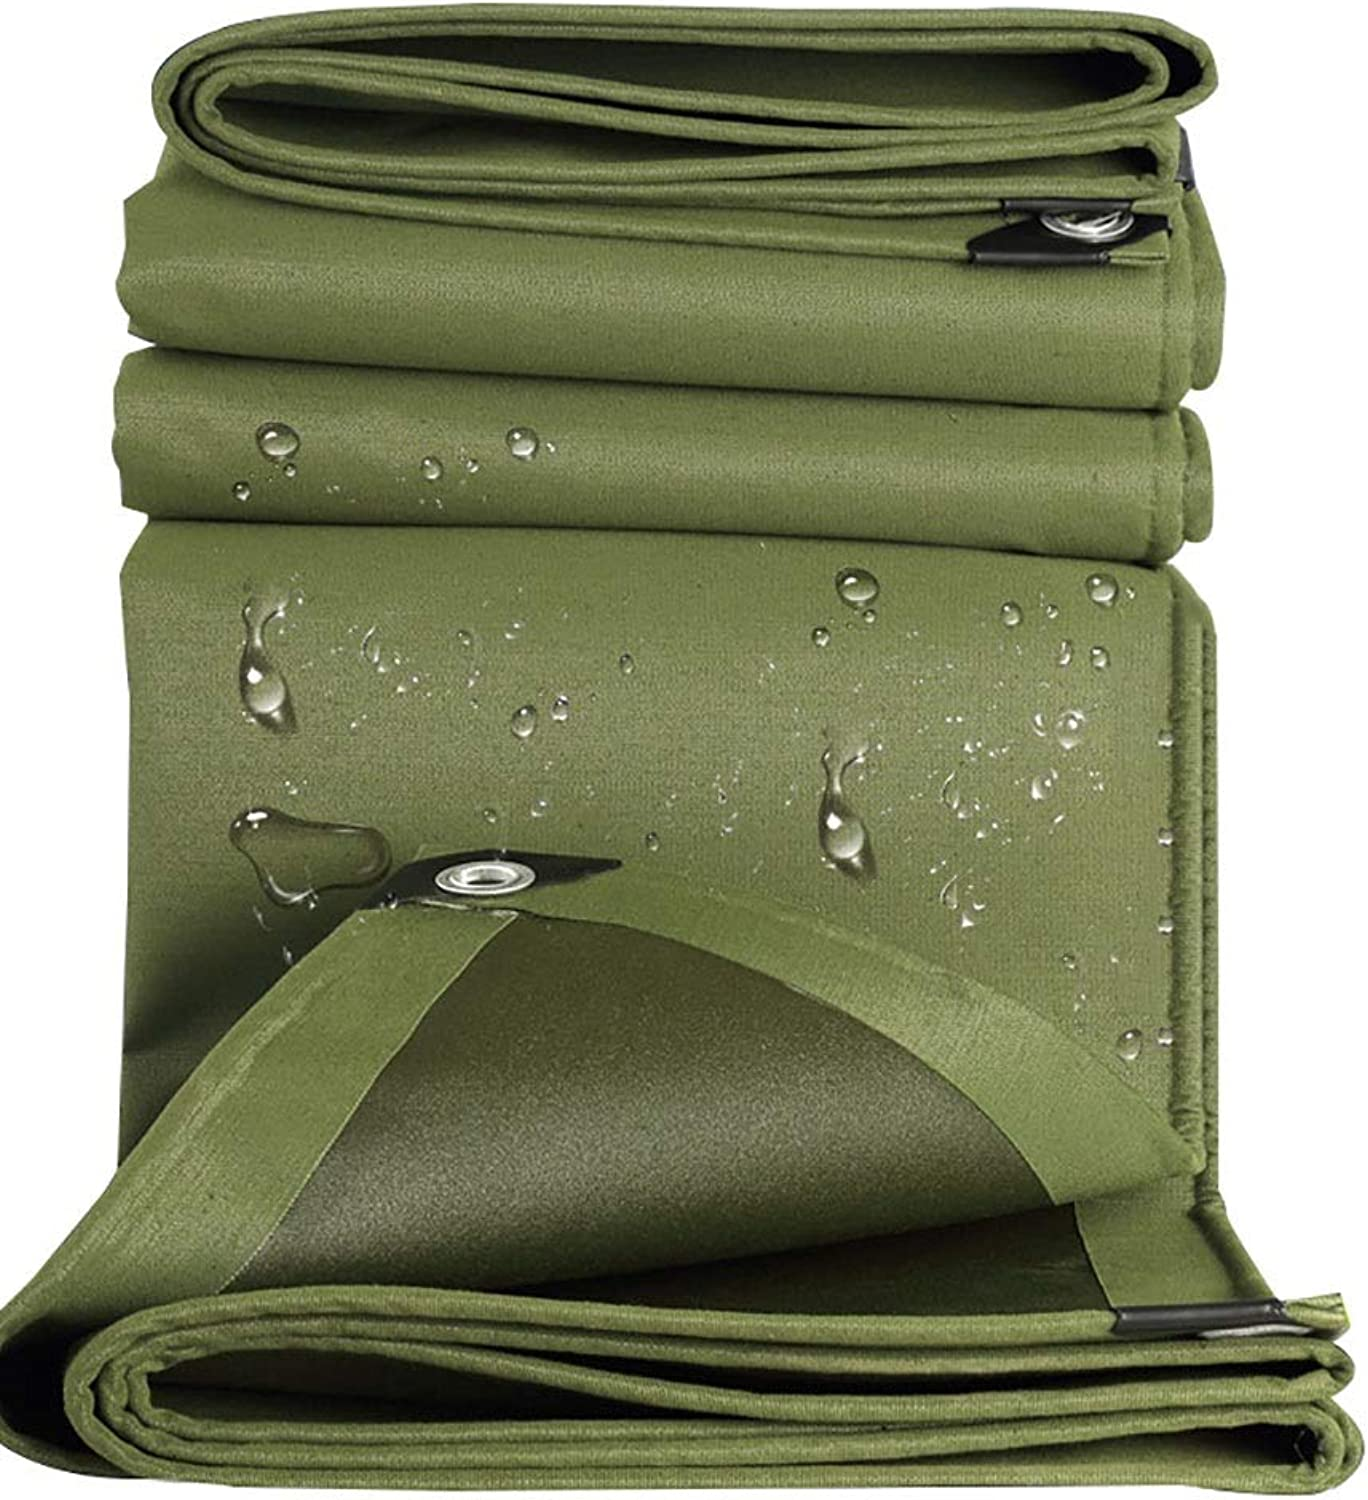 Tarp Heavy Duty Reinforced Canvas Tarp Waterproof Tarpaulin Ground Sheet Camping Tent Cover with Eyelets, Olive Drab (Size   2.8x4.8m)